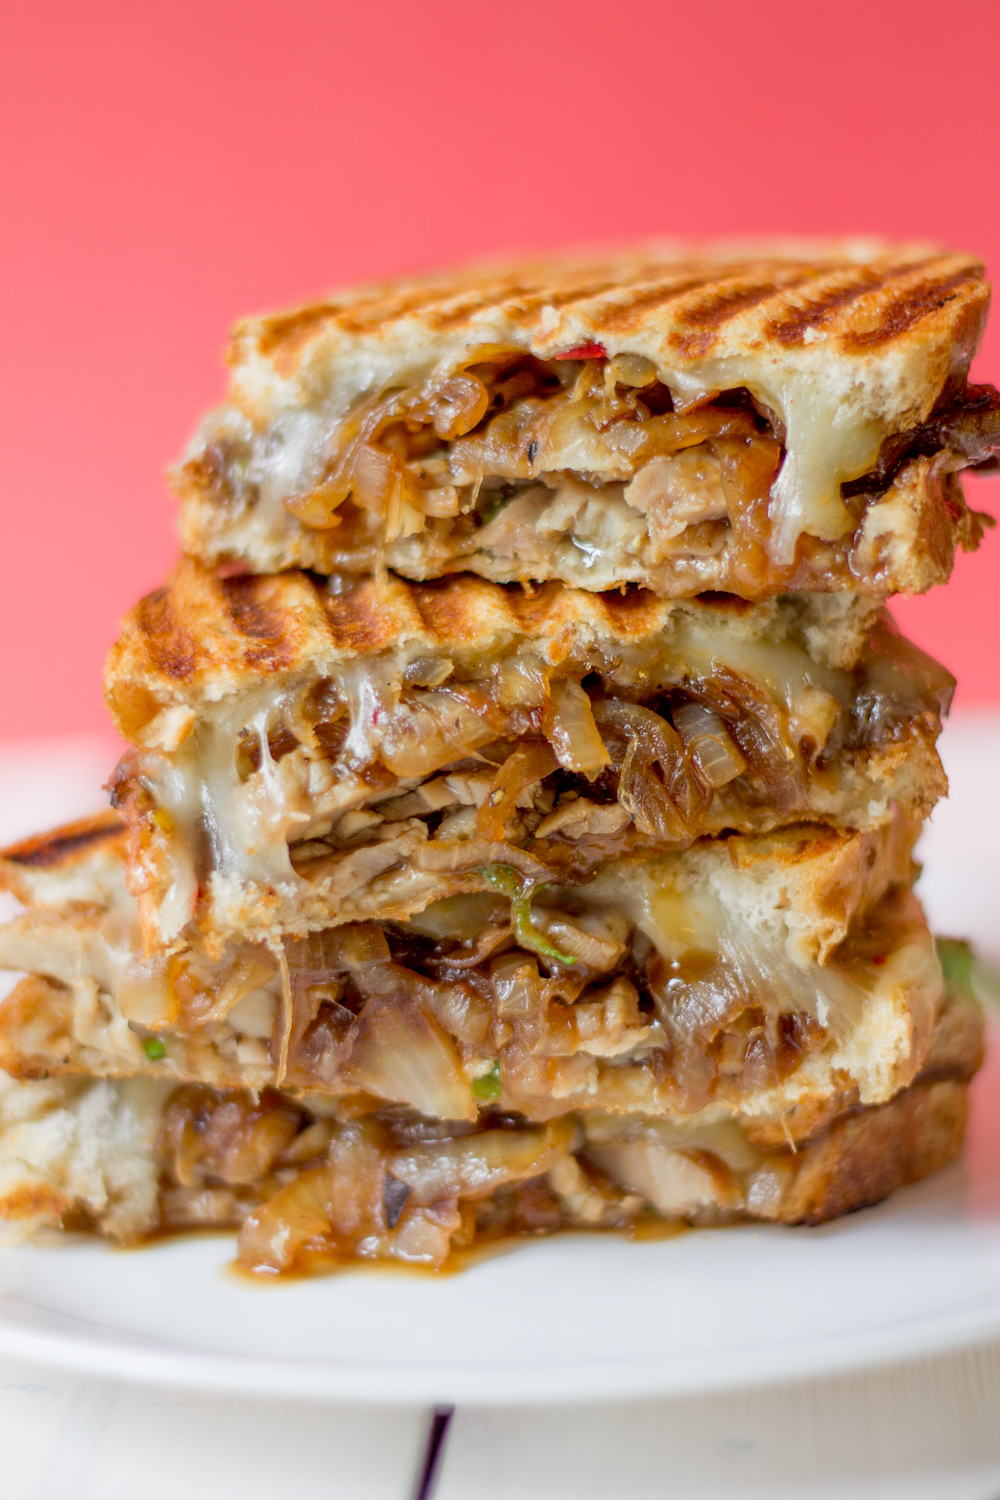 Maple Pork Panini with Balsamic Caramelized Onions